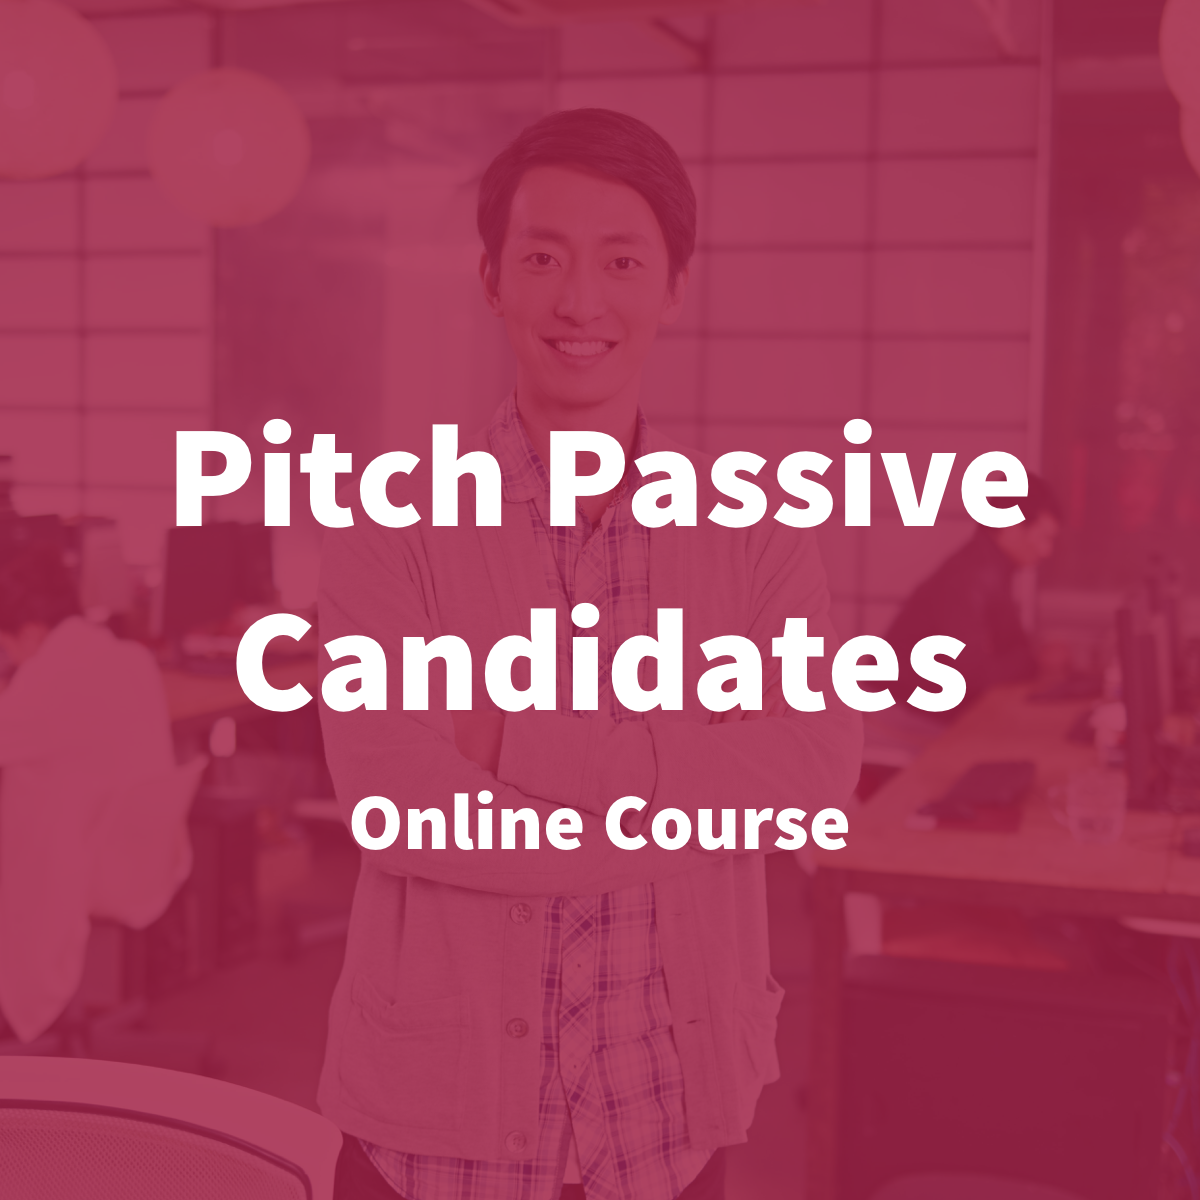 Take an online course - on 'How to Recruit Passive Candidates'Designed to help recruiters learn the fundamentals of how to find and engage great candidates who are not actively looking in the job market. PS: It's FREE (for now)